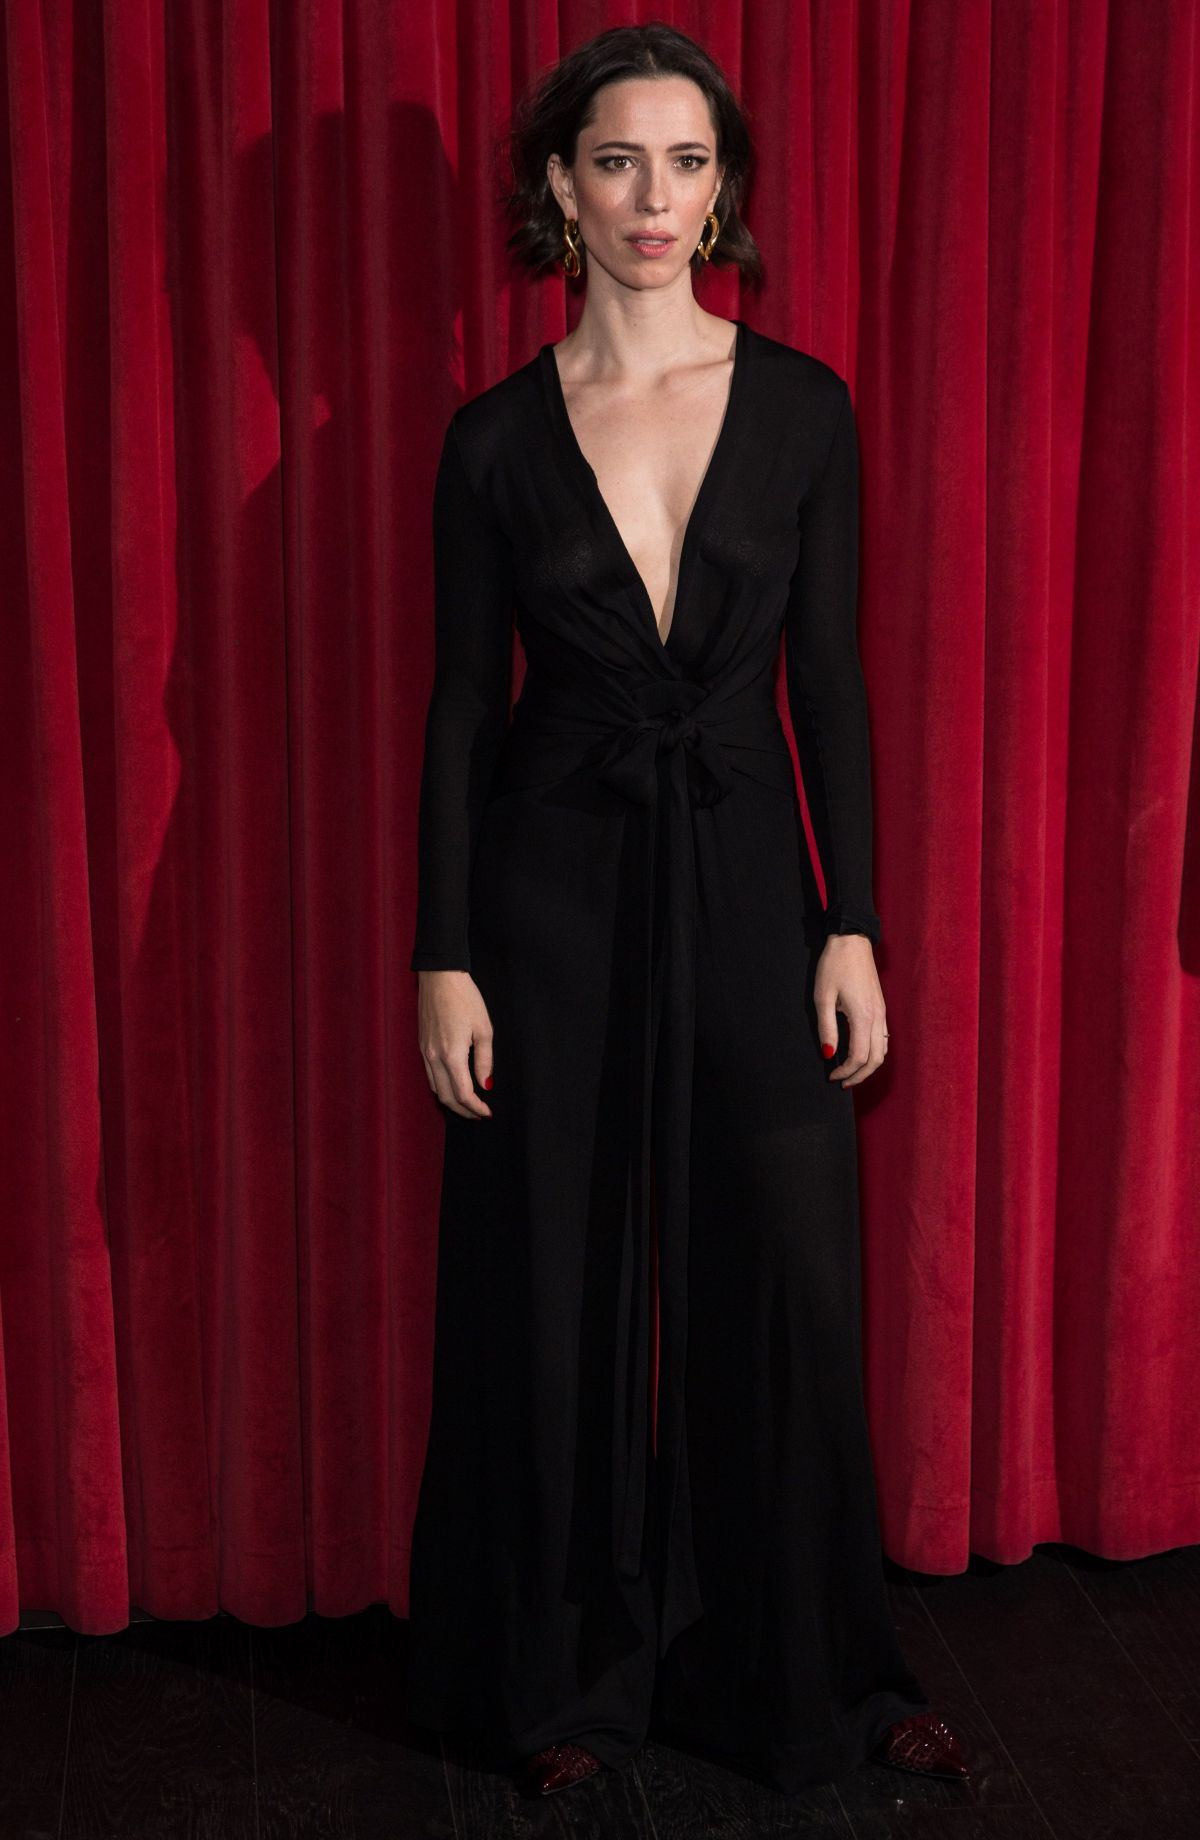 Rebecca Hall At christine special screening and q&a in ...  Rebecca Hall At...